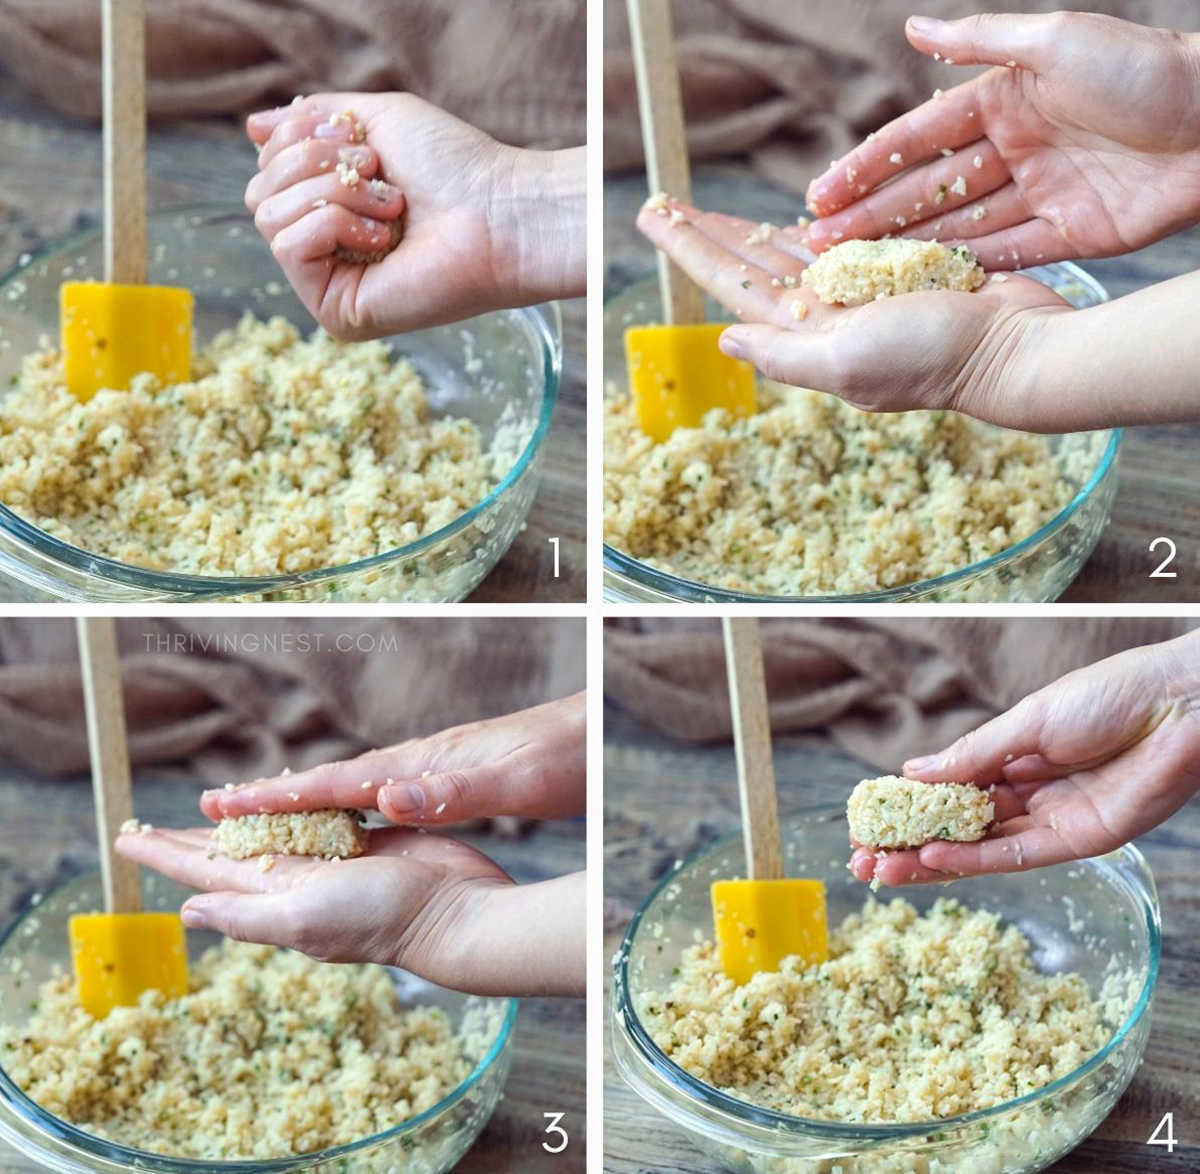 Process shots of how to make cauliflower nuggets tots or bites for babies, how to shape with your hand.